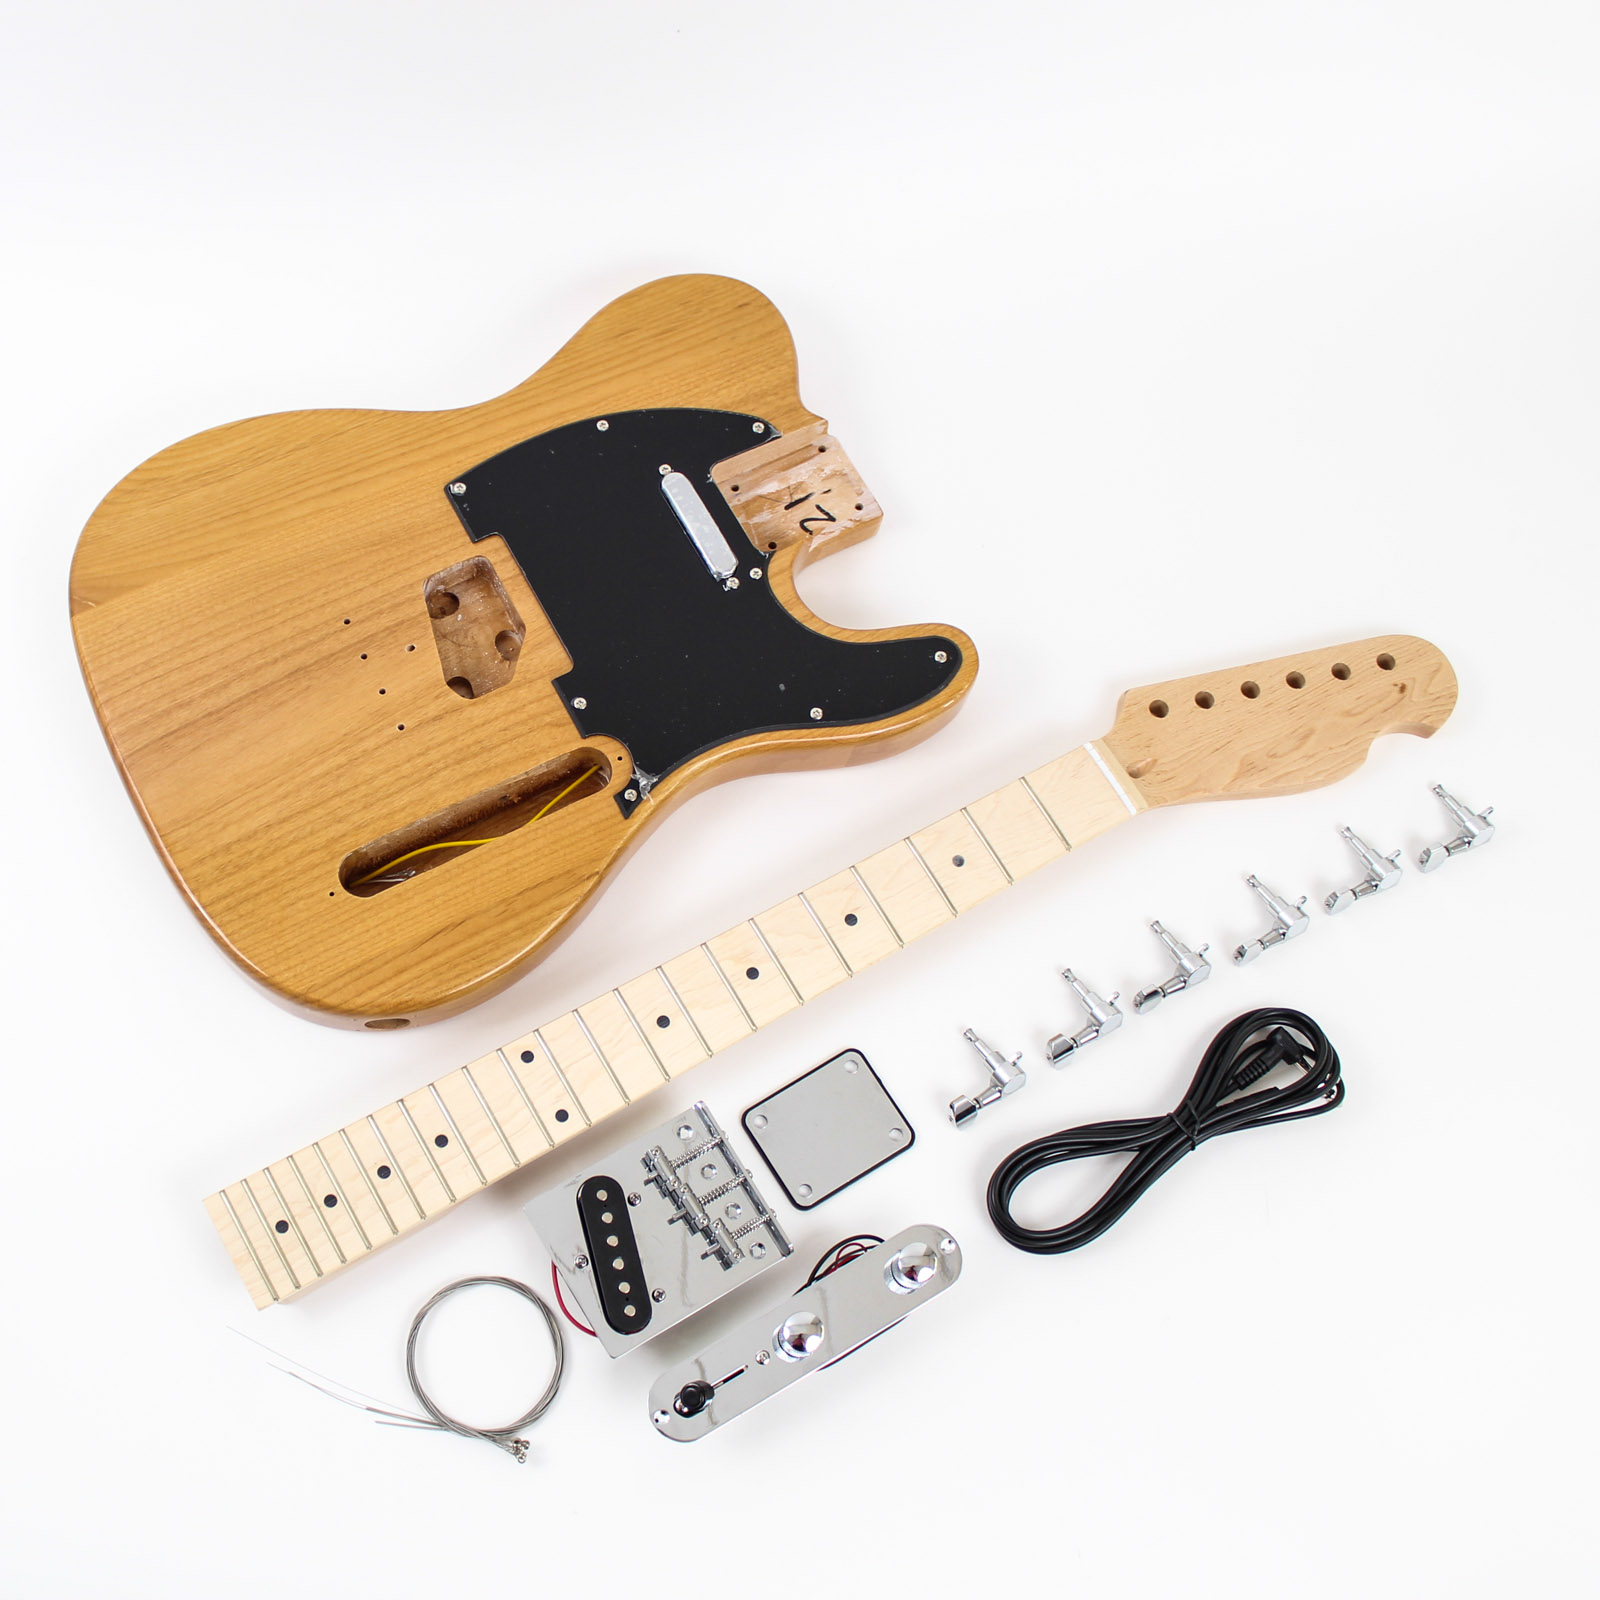 telecaster style guitar kit pre finished diy guitars. Black Bedroom Furniture Sets. Home Design Ideas